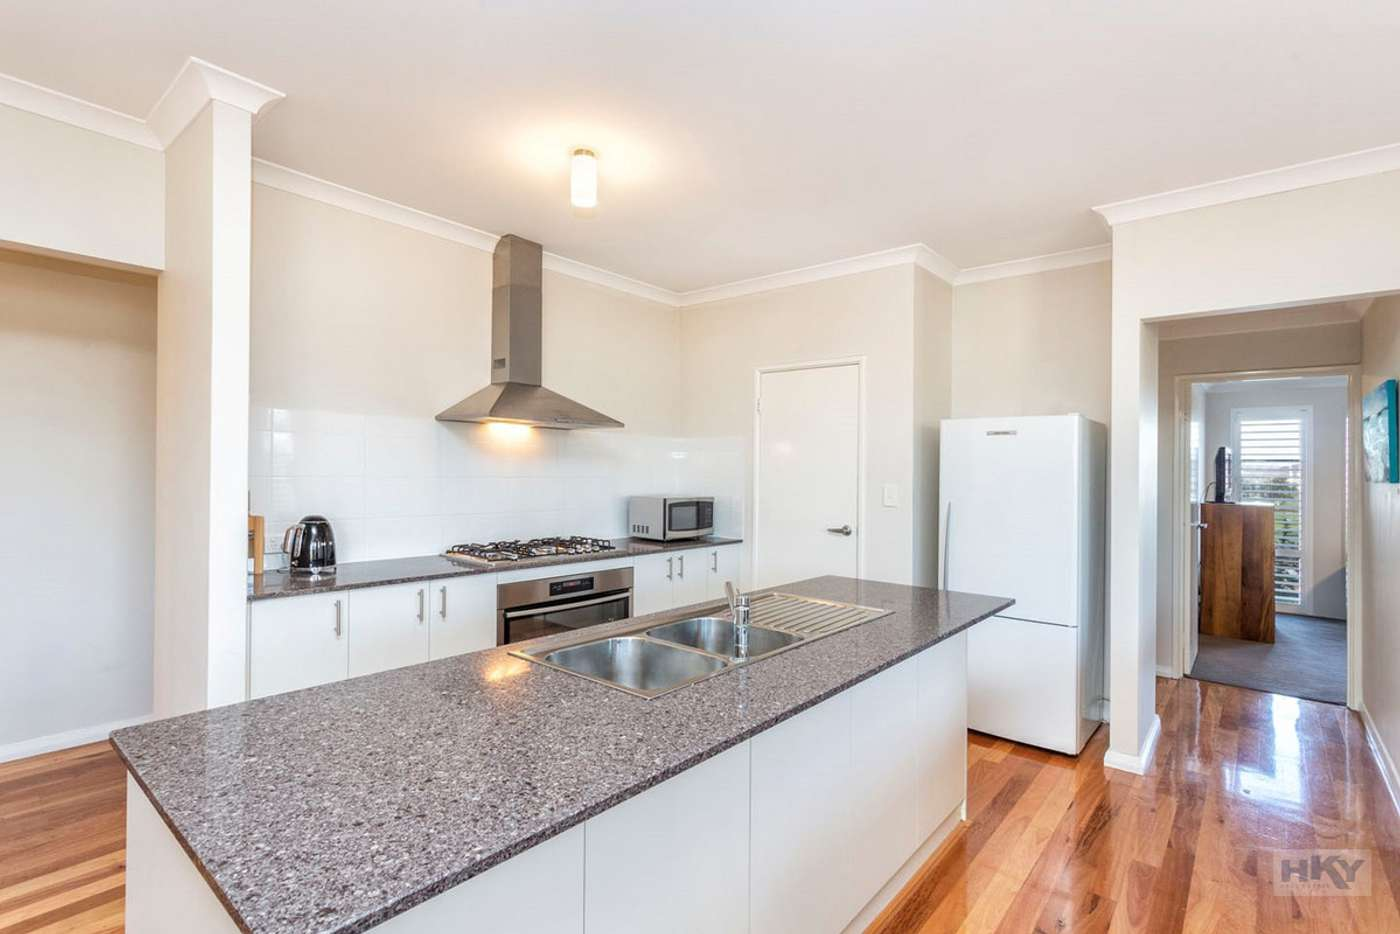 Fifth view of Homely house listing, 15 Callet Drive, Caversham WA 6055